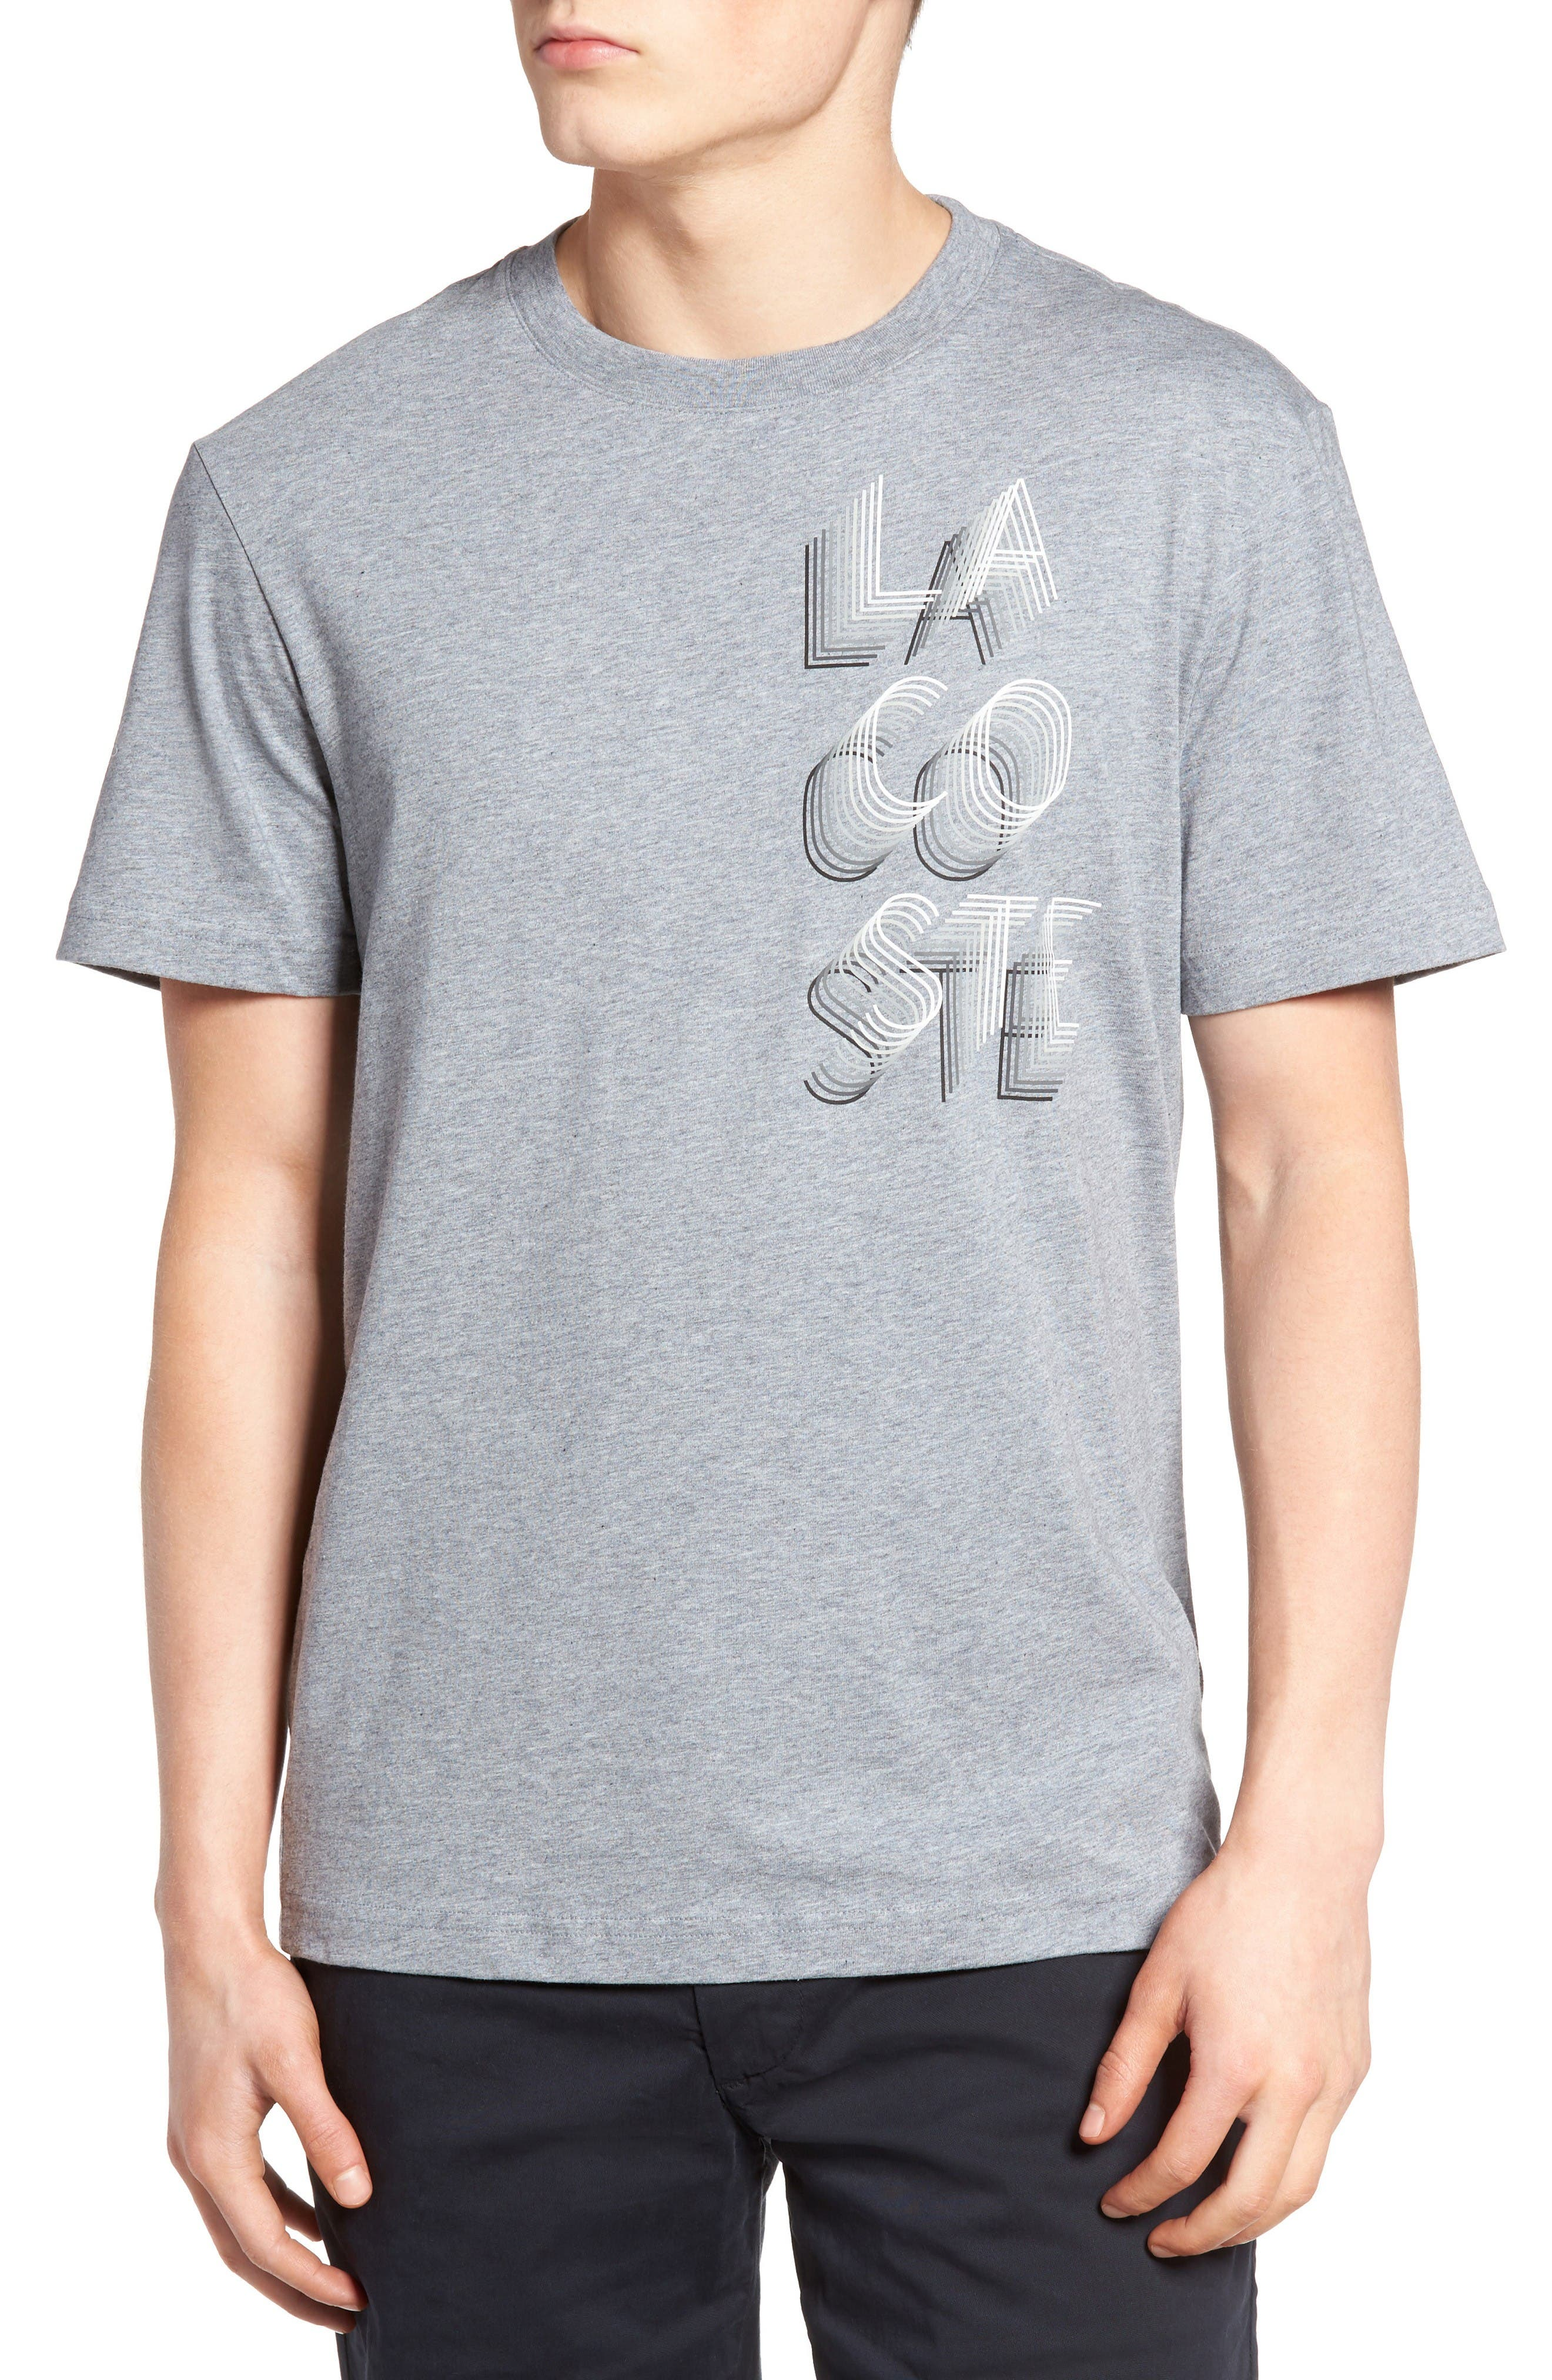 Alternate Image 1 Selected - Lacoste 3D Print Logo Graphic T-Shirt